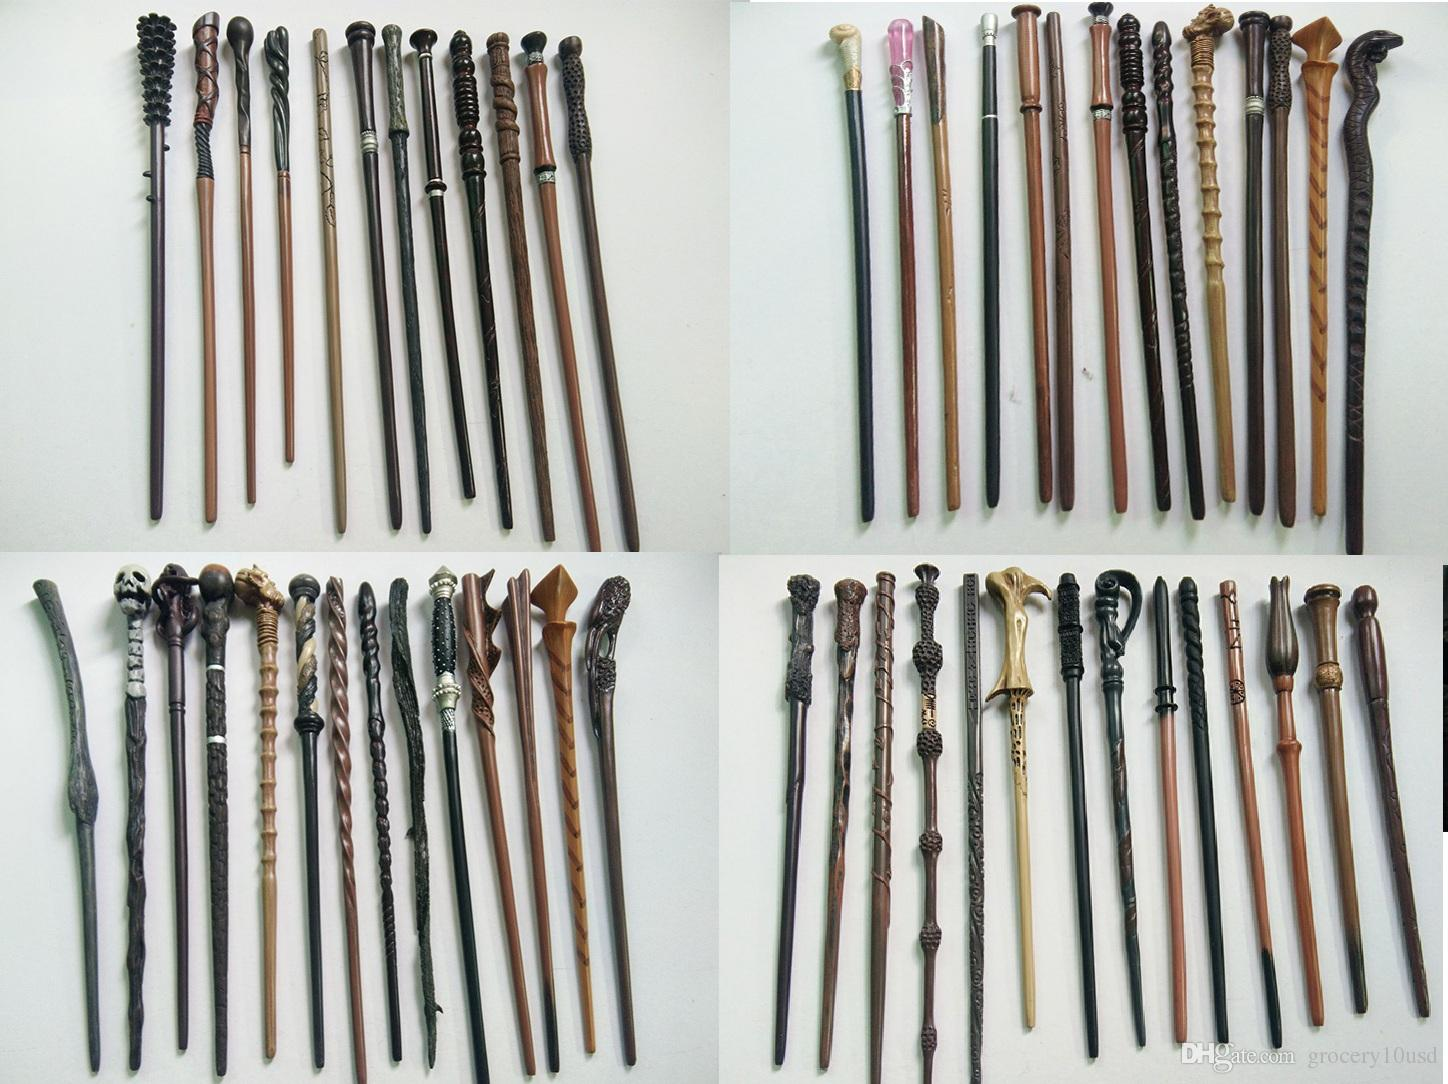 Magic Wand Harry Harry Potter Metal Core Magic Wand 58 Styles With Magic Box Hermione Dumbledore Snape Sirius Halloween Christmas Magic Gift